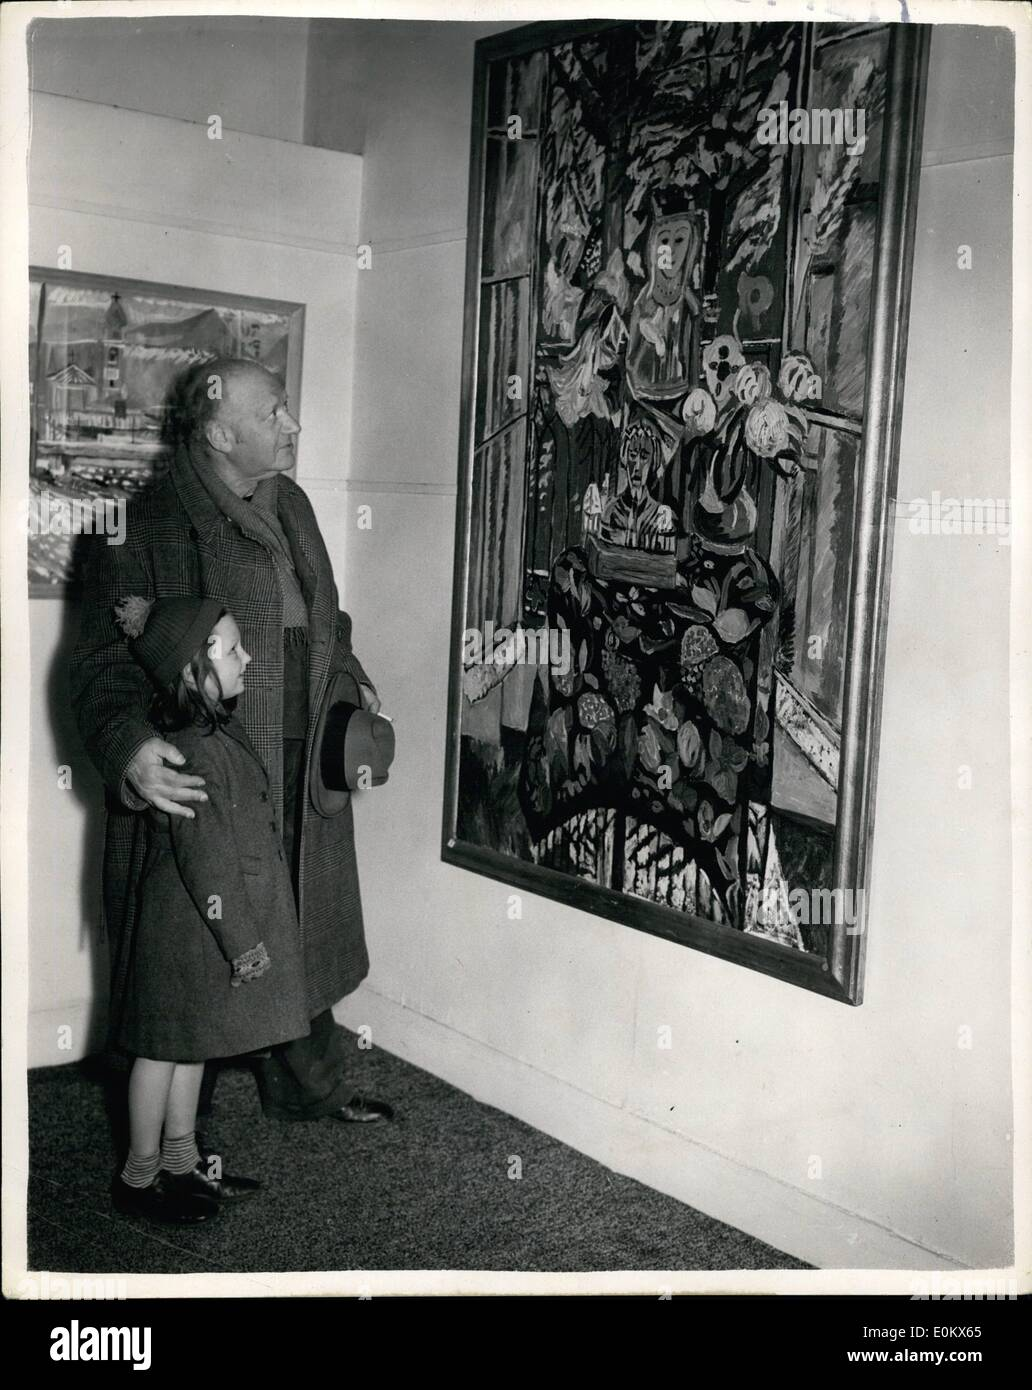 Mar. 03, 1952 - Epstein attends opening of Theodore Garman's exhibition: Jacob Epstein, who has lent two pictures to the second - Stock Image